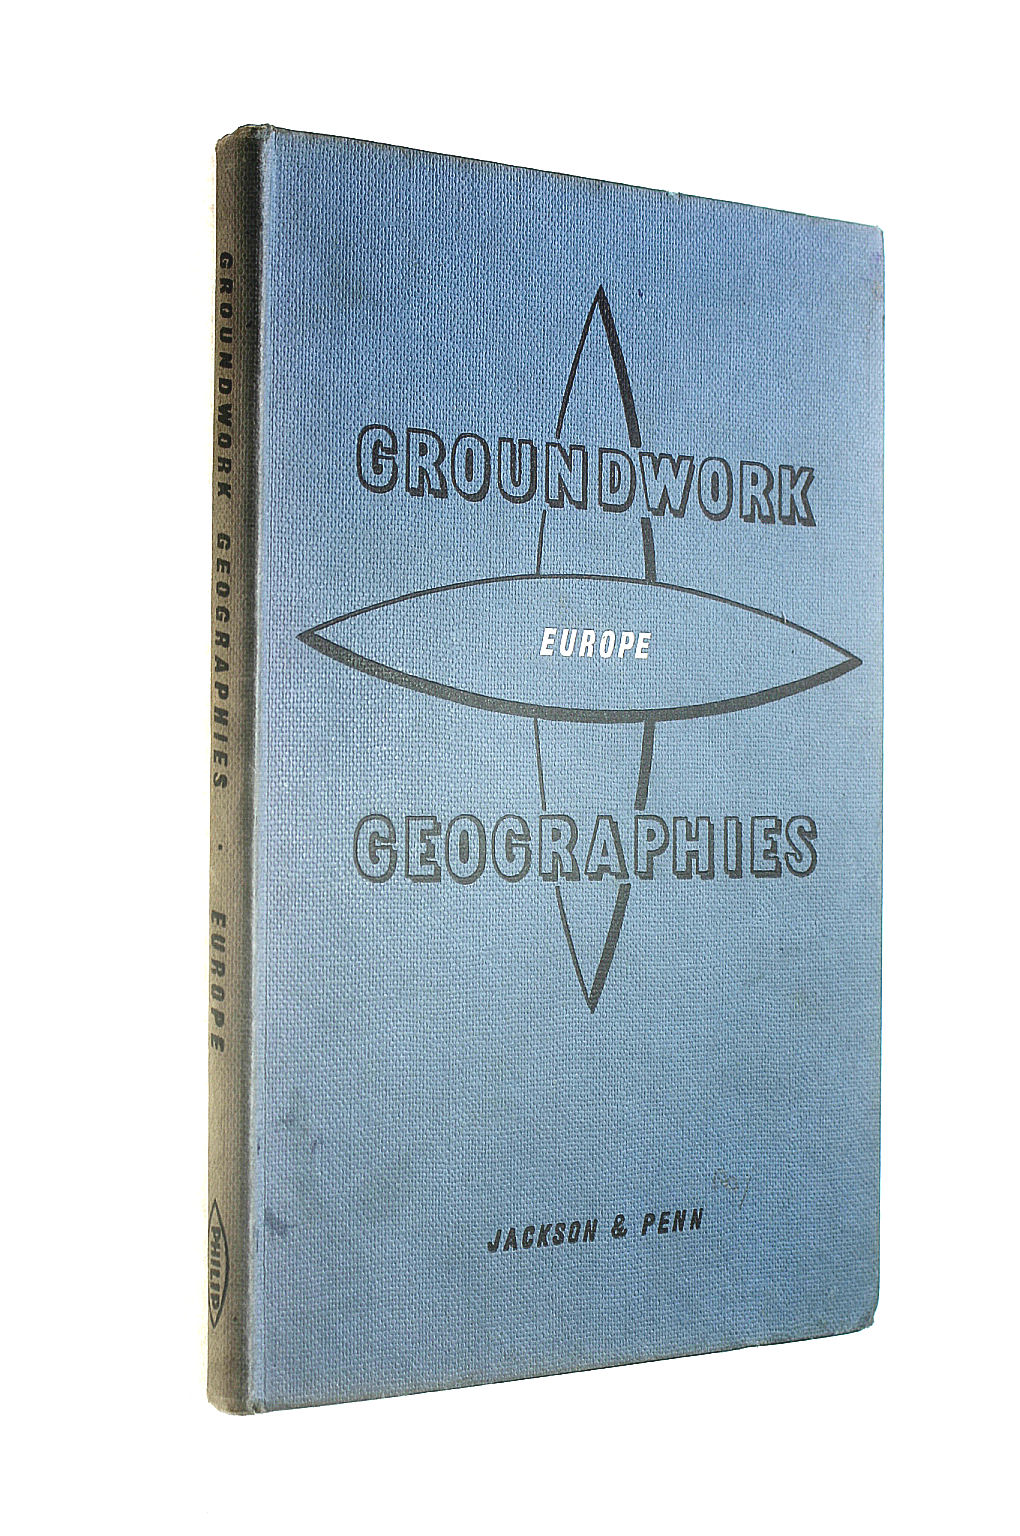 Image for Europe (Groundwork geographies)